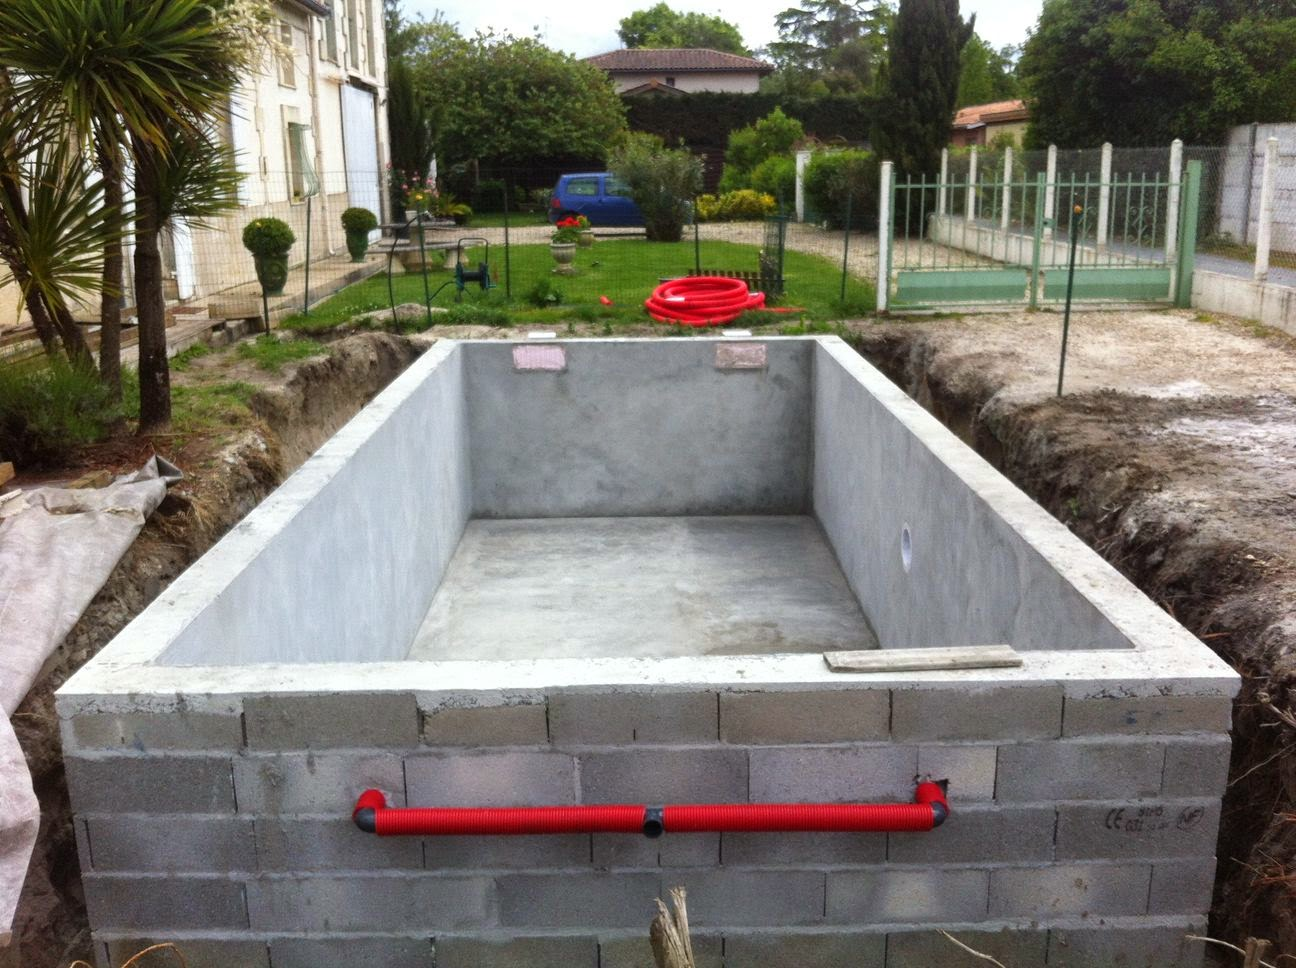 Projet tapes de construction d 39 une piscine en gironde for Piscine construction